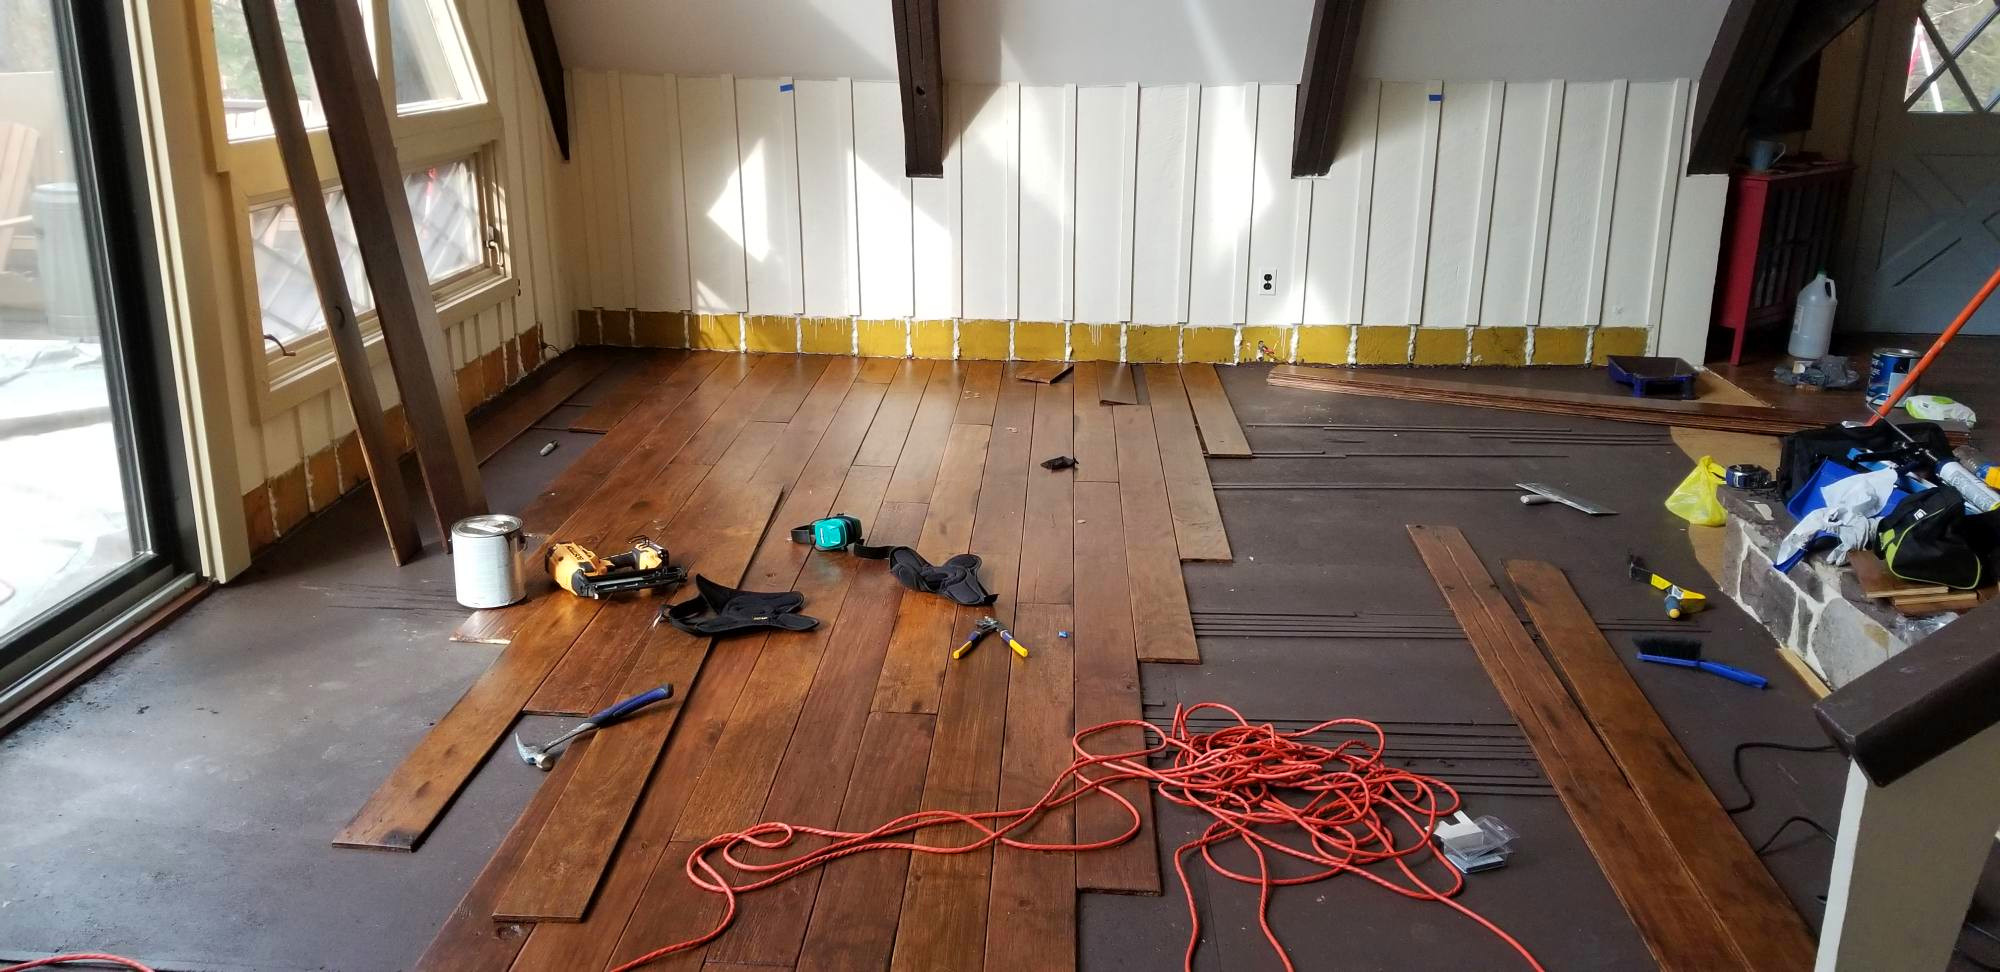 DIY Farmhouse Wide Plank Flooring Made From Plywood - The Plywood Floor Finished - Starting The Plywood Flooring Install